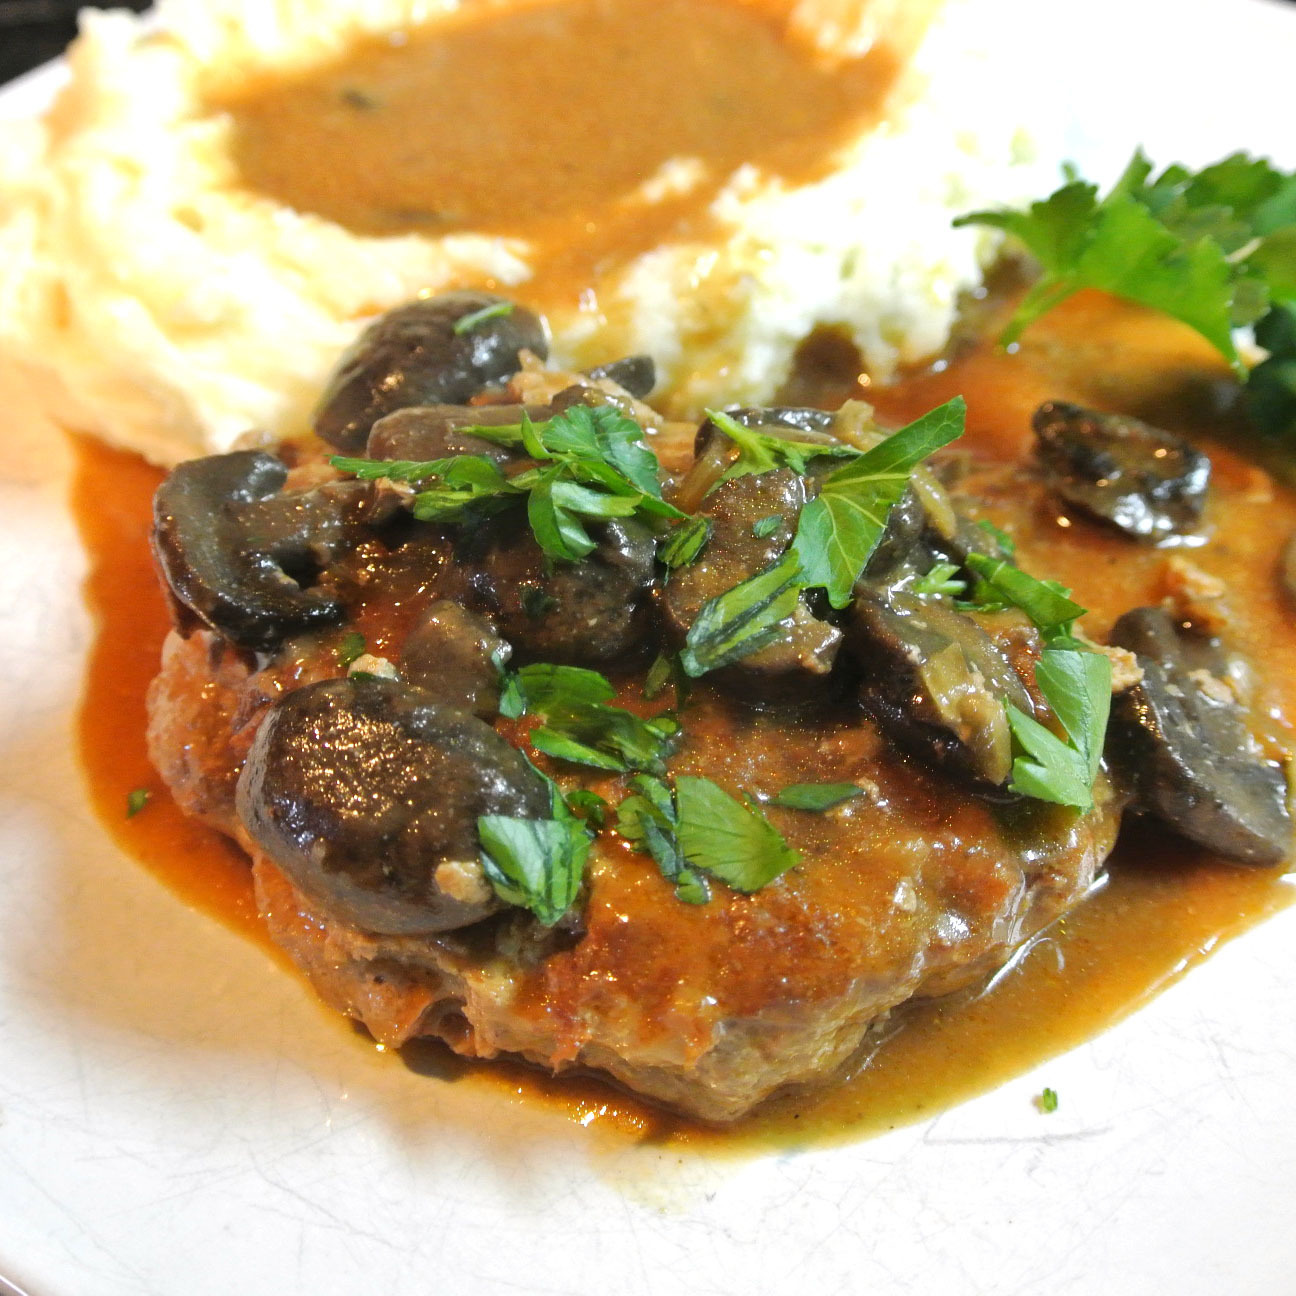 Gluten Free Salisbury Steak with Mushroom Gravy